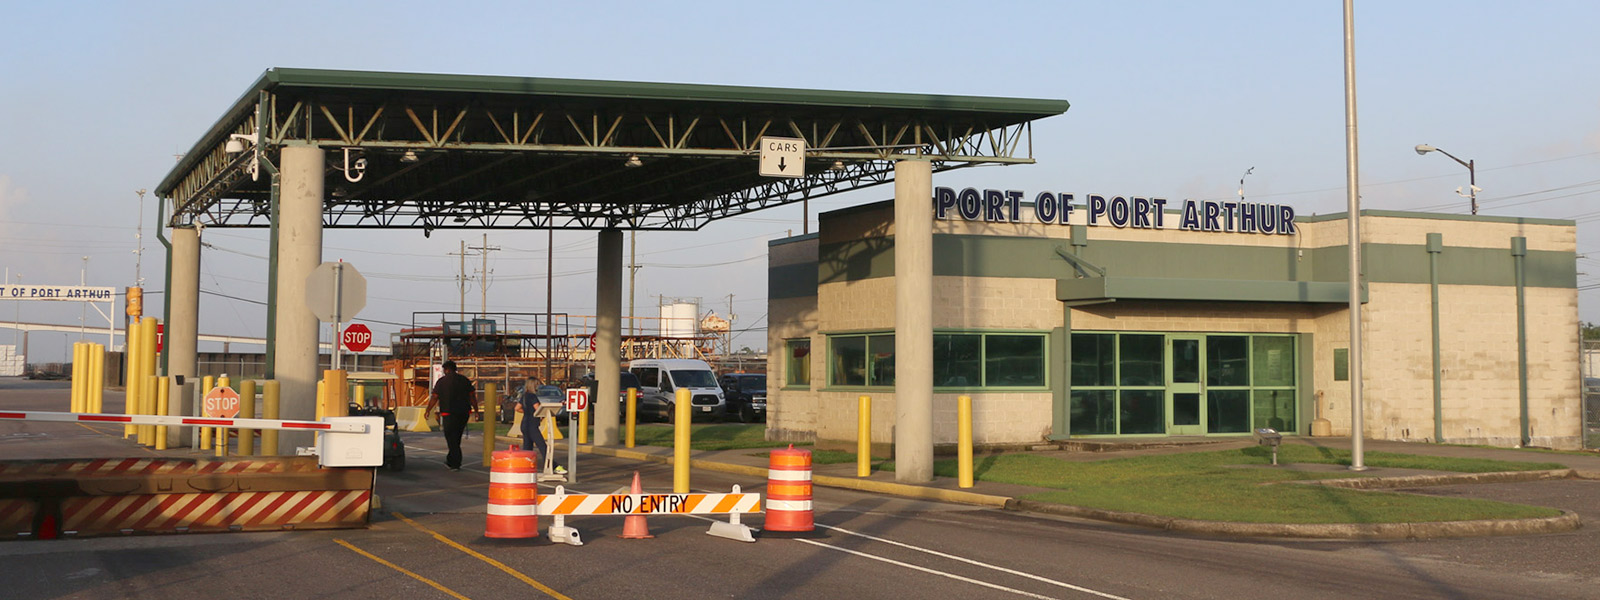 Port of Port Arthur Dock Terminal Entrance and Office